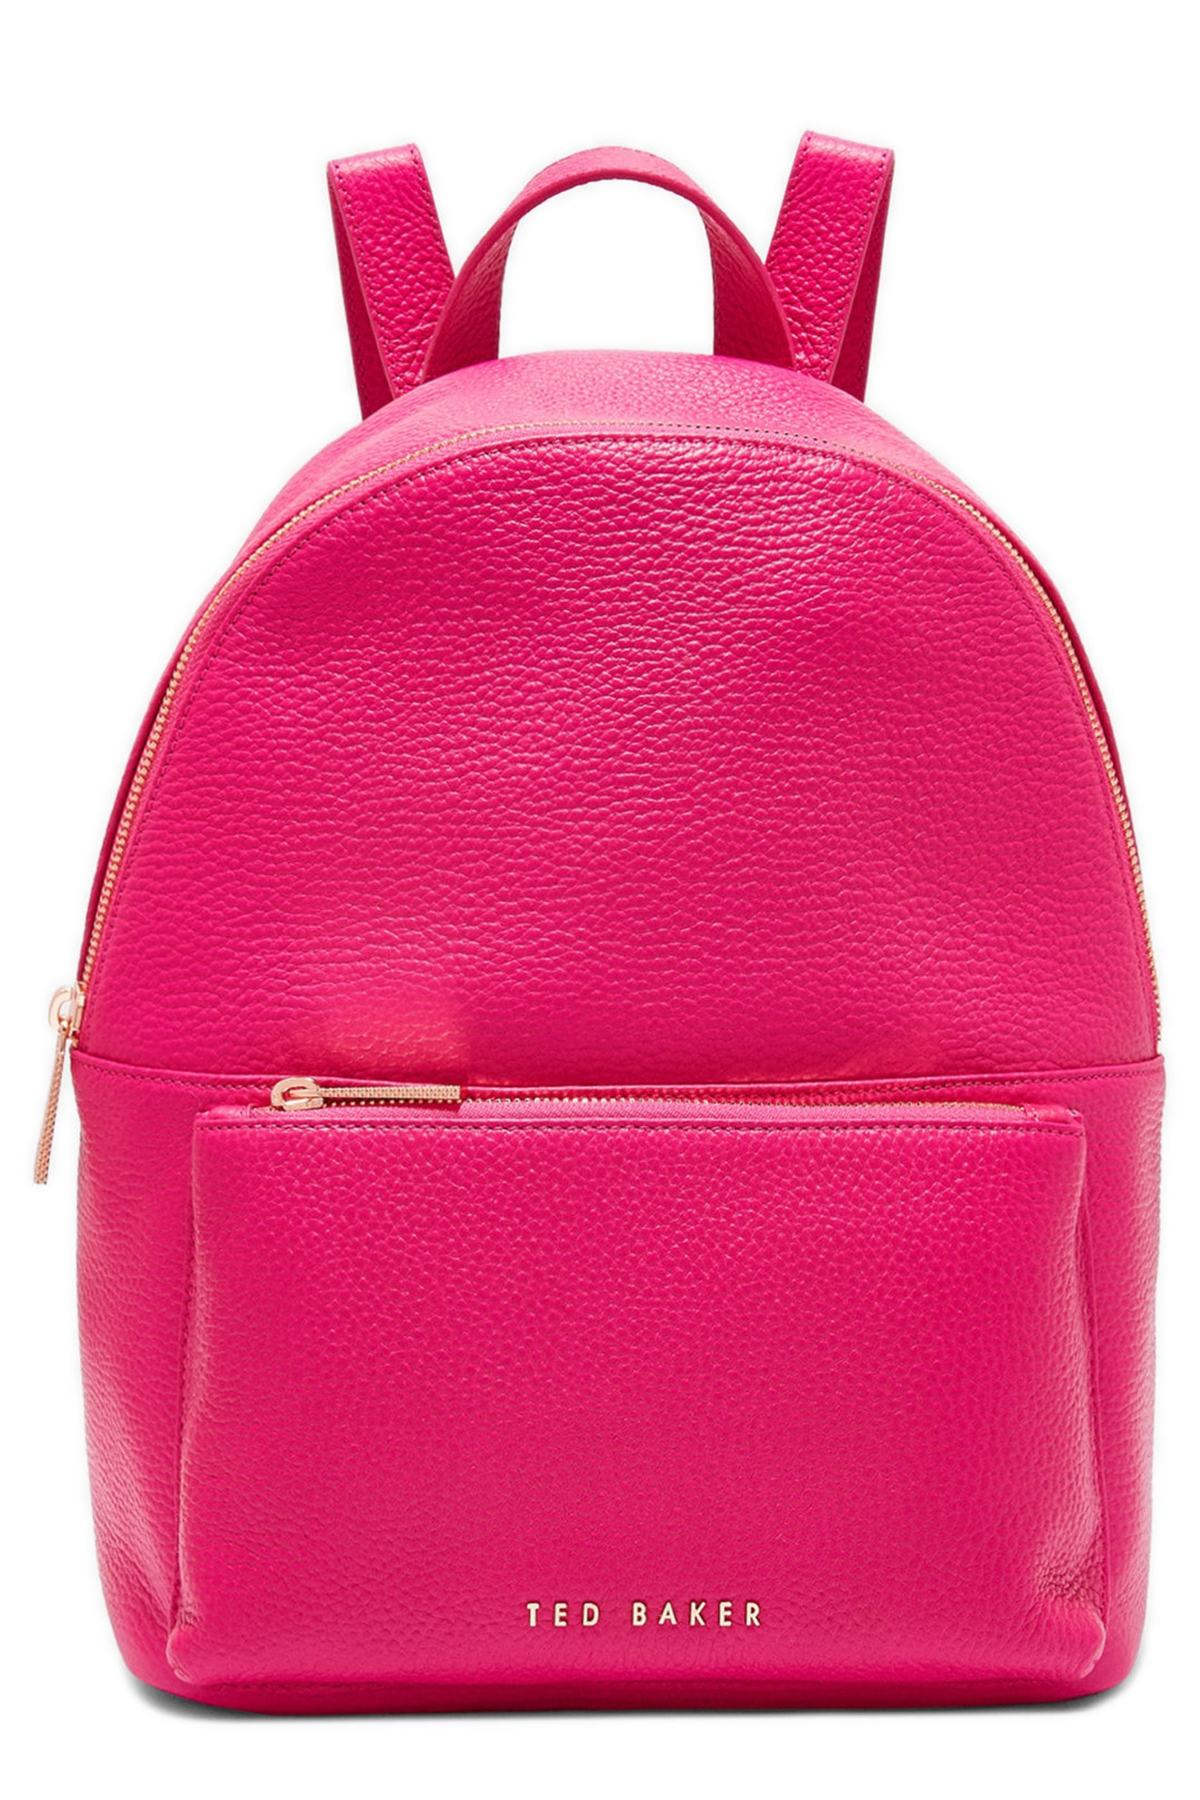 5ed8ad170 Pearen Soft Grain Leather Backpack by Ted Baker London on  nordstrom rack